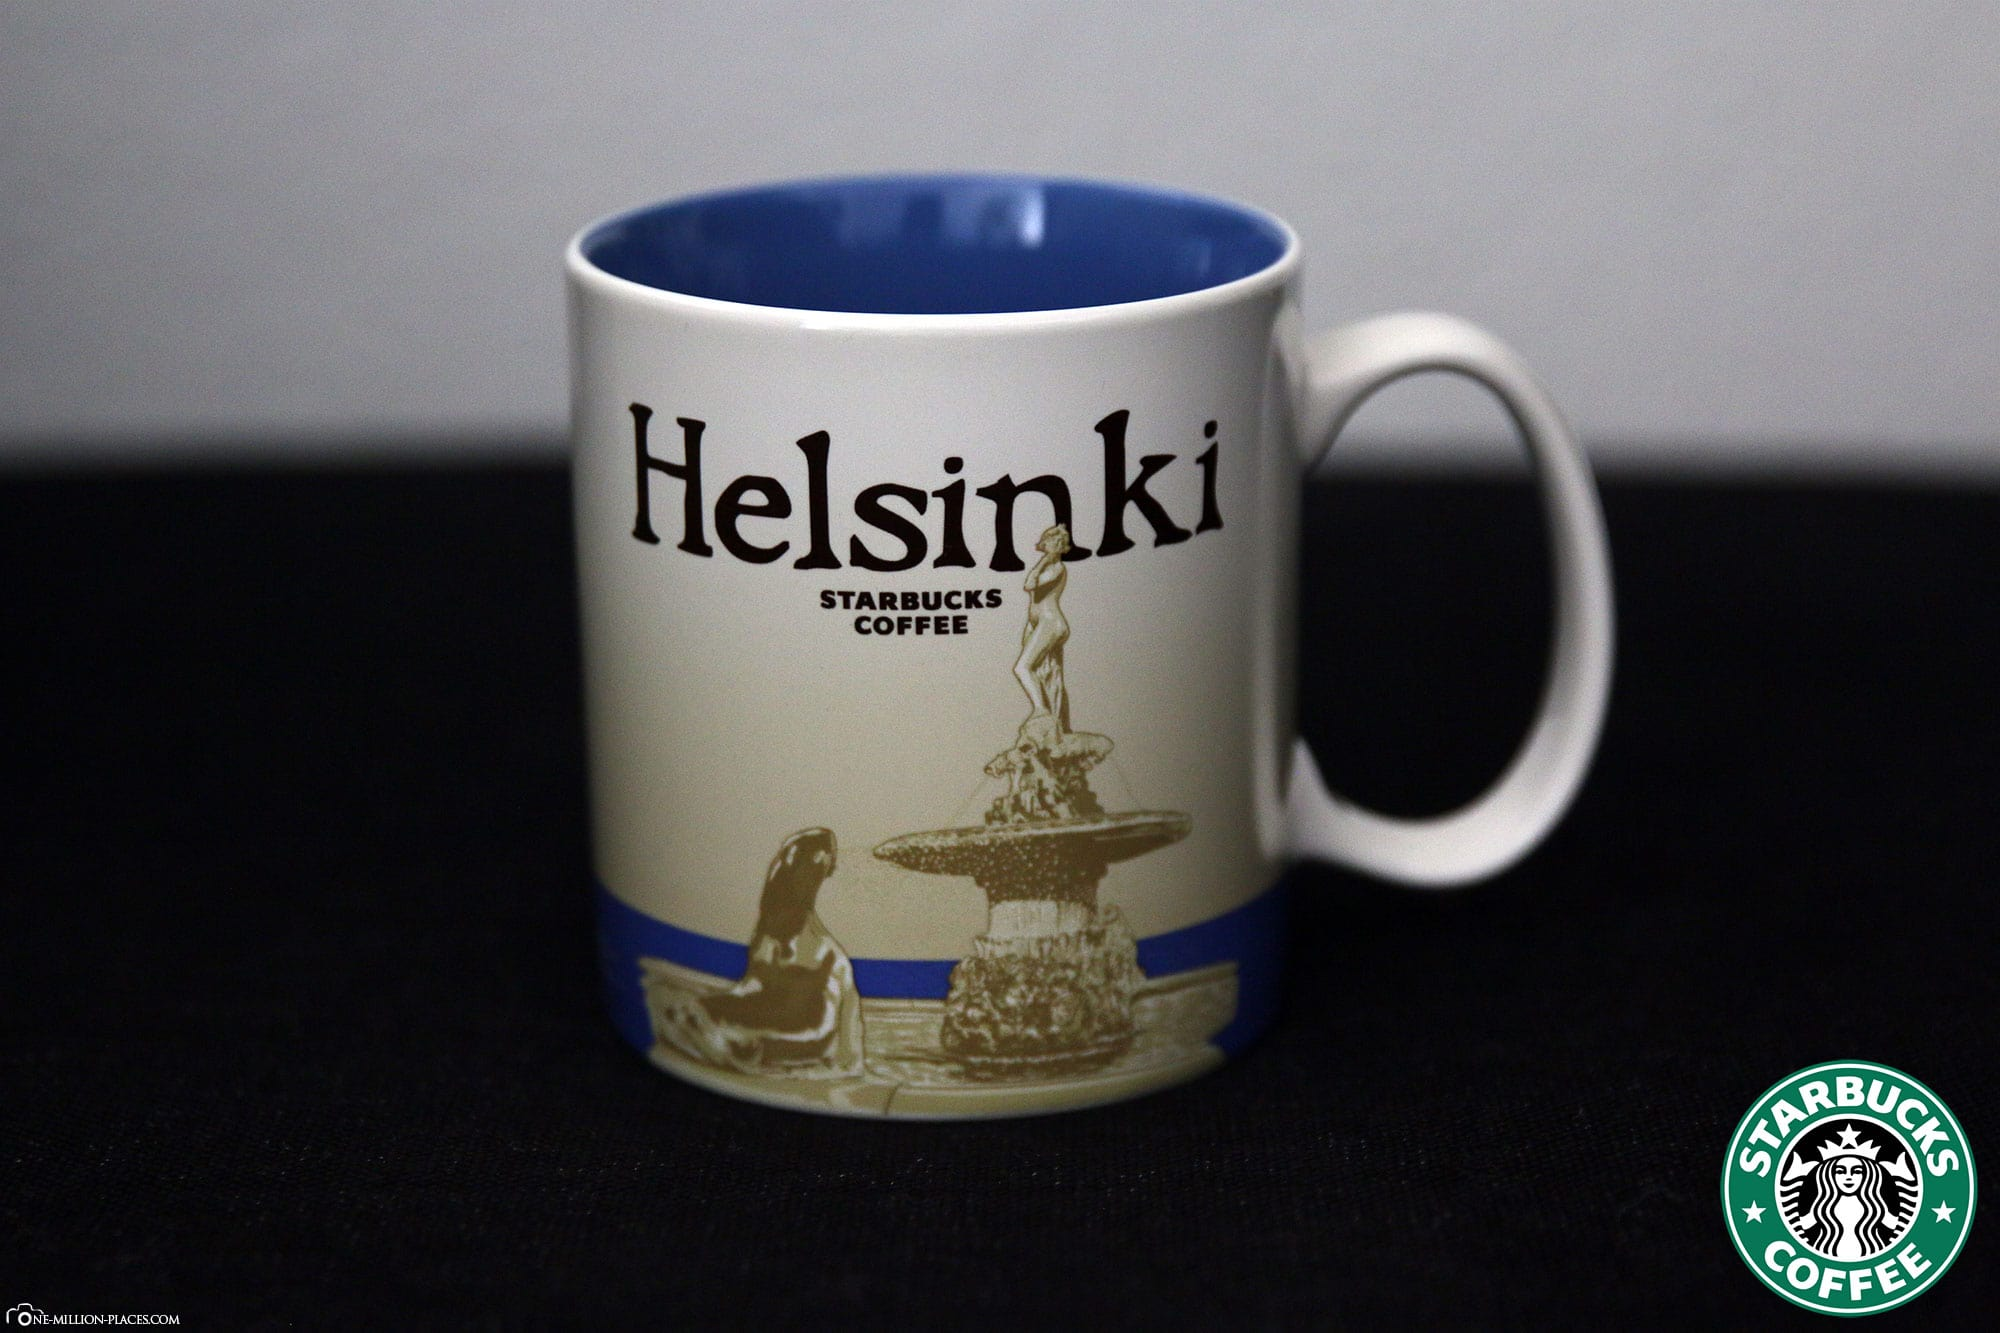 Helsinki, Starbucks Tasse, Global Icon Serie, City Mugs, Sammlung, Finnland, Reisebericht